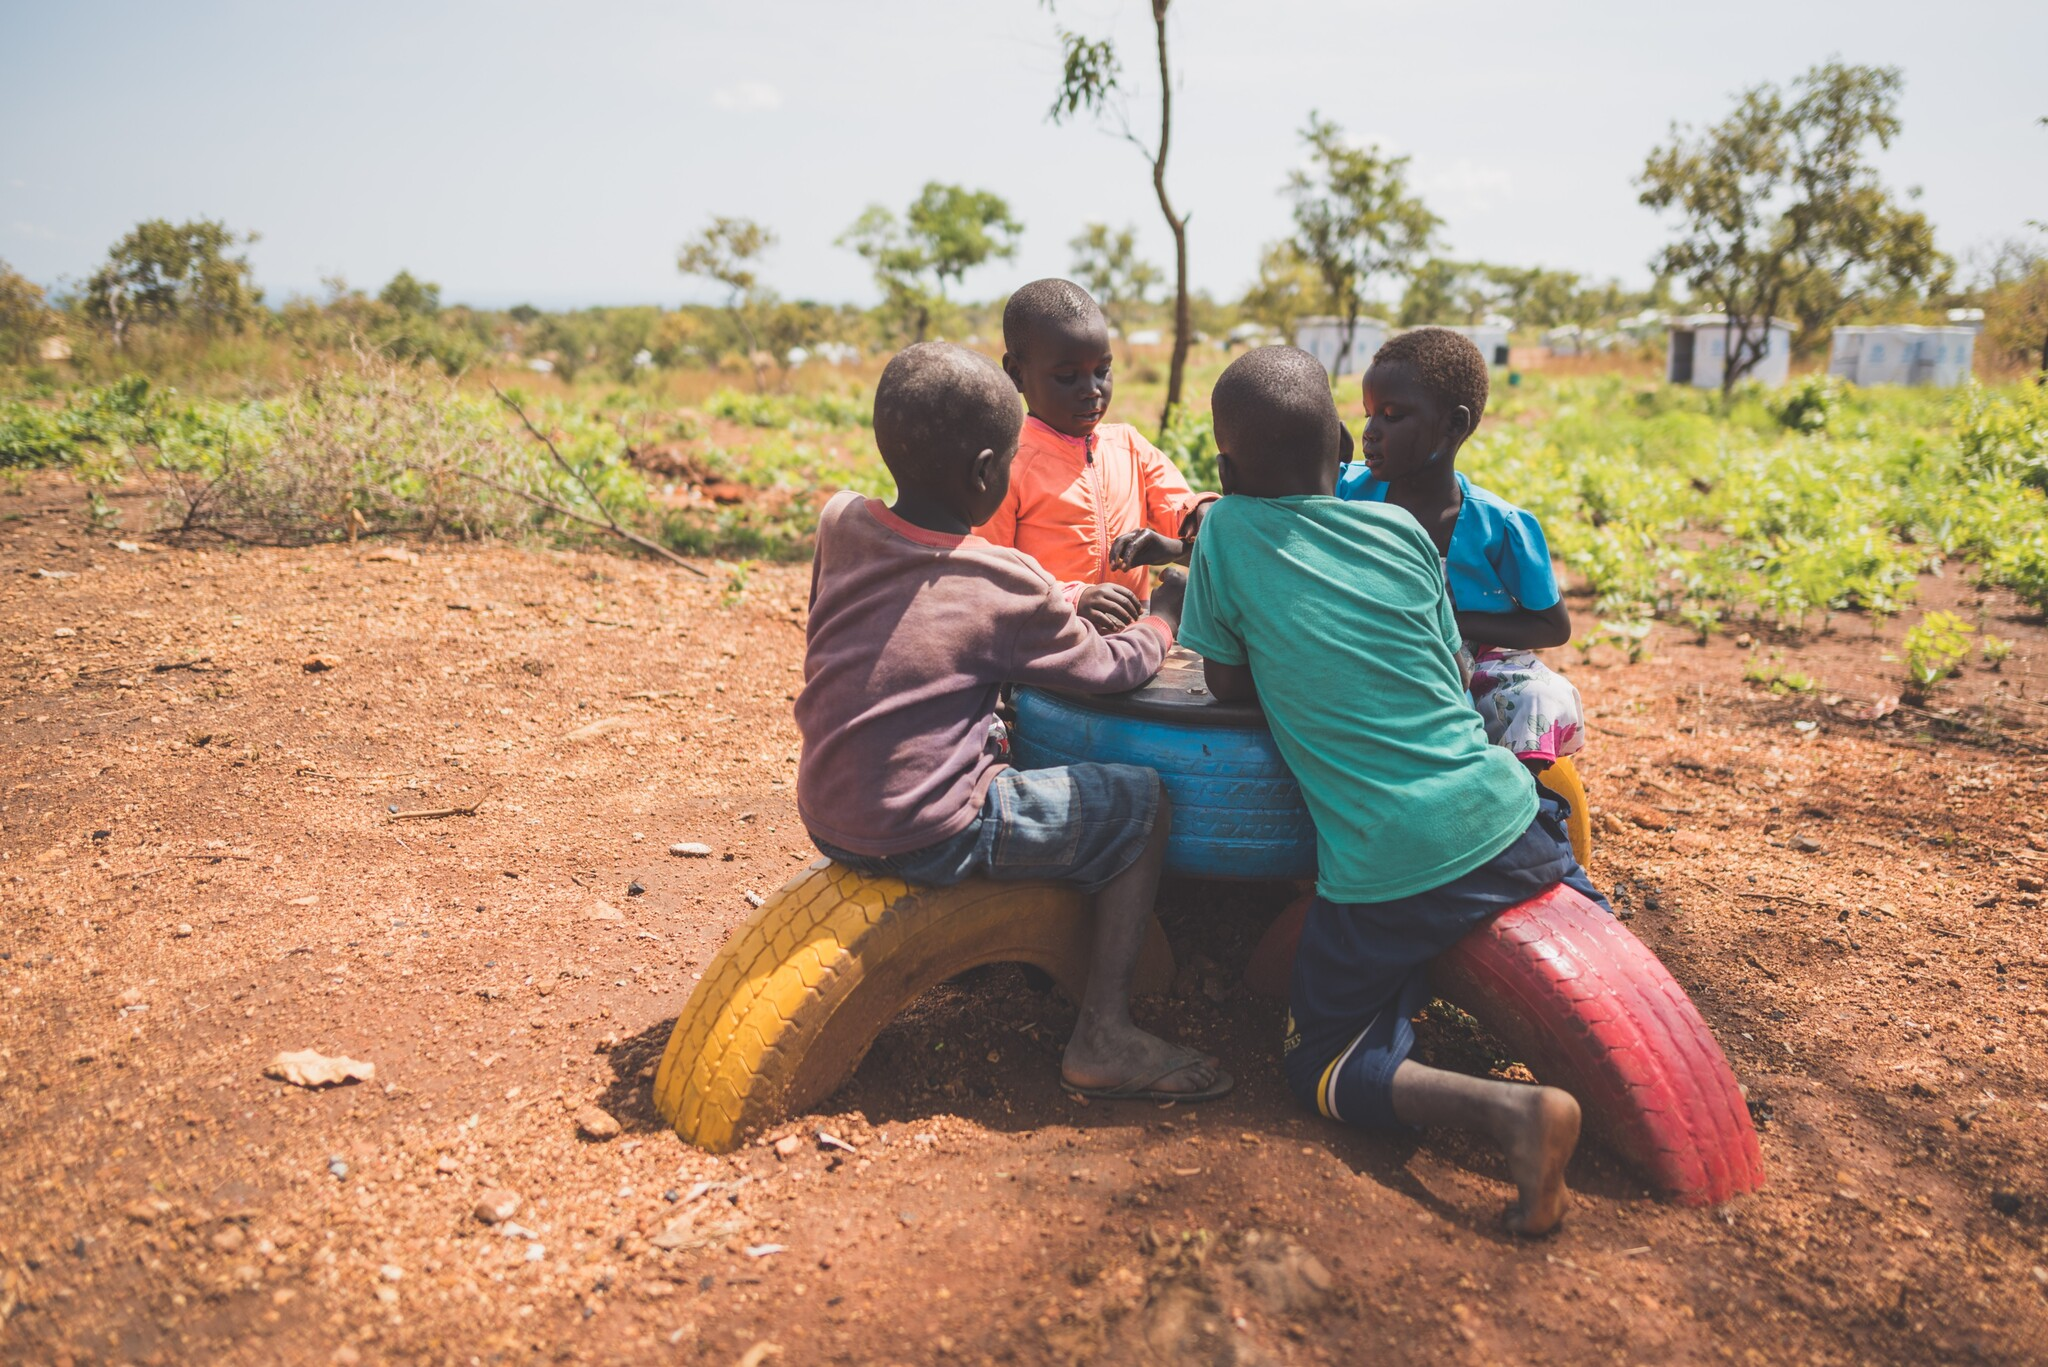 Four young boys sit around a bench made of painted car tyres and play a game together.